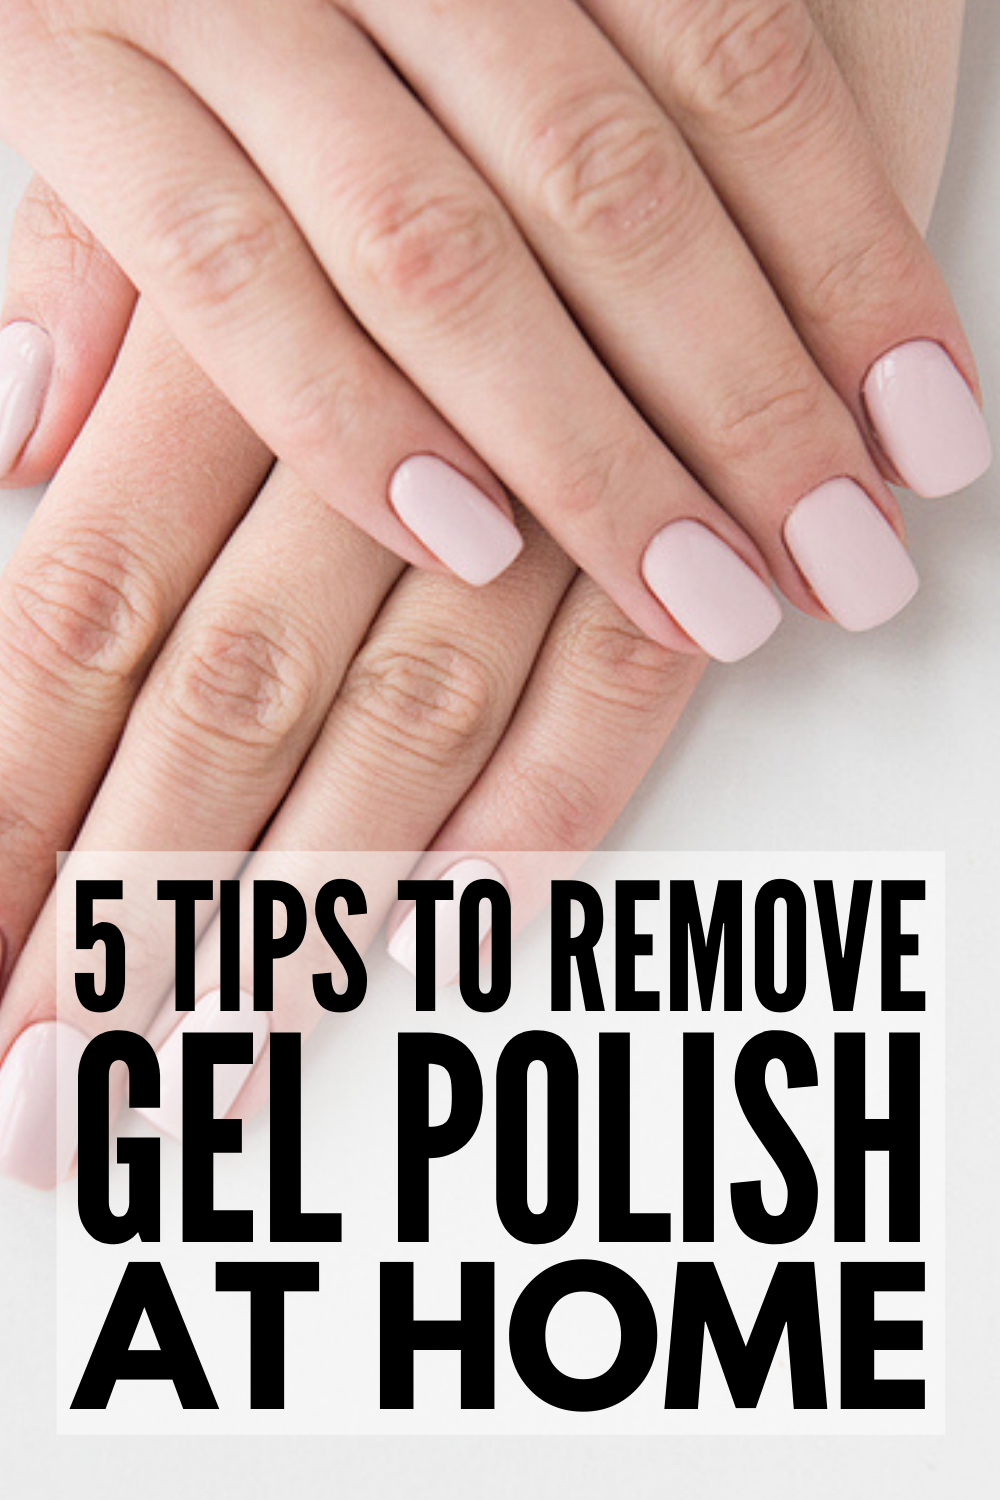 How To Remove Gel Polish At Home 5 Methods That Work In 2020 Remove Gel Polish Gel Nail Removal Take Off Gel Nails